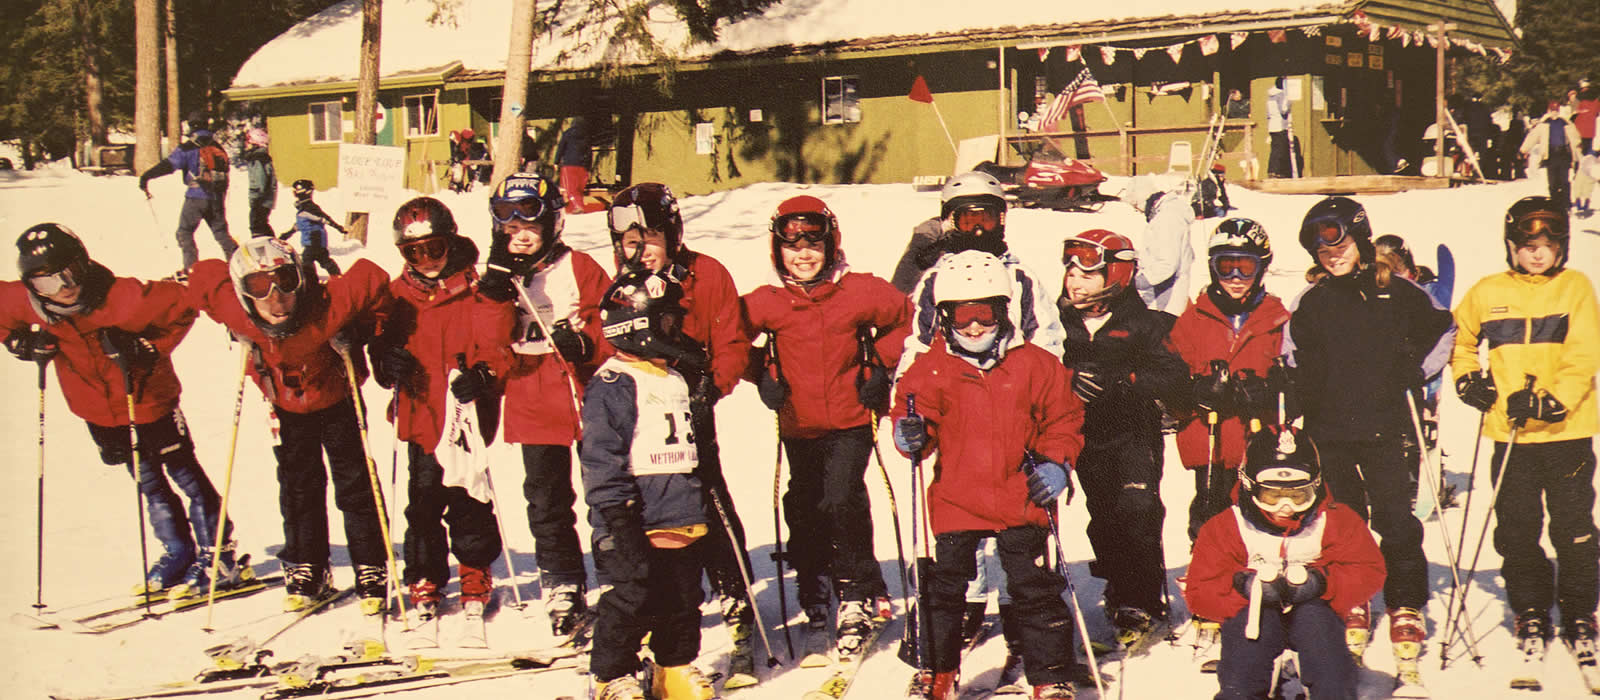 Loup Loup Ski School - Archive Photo